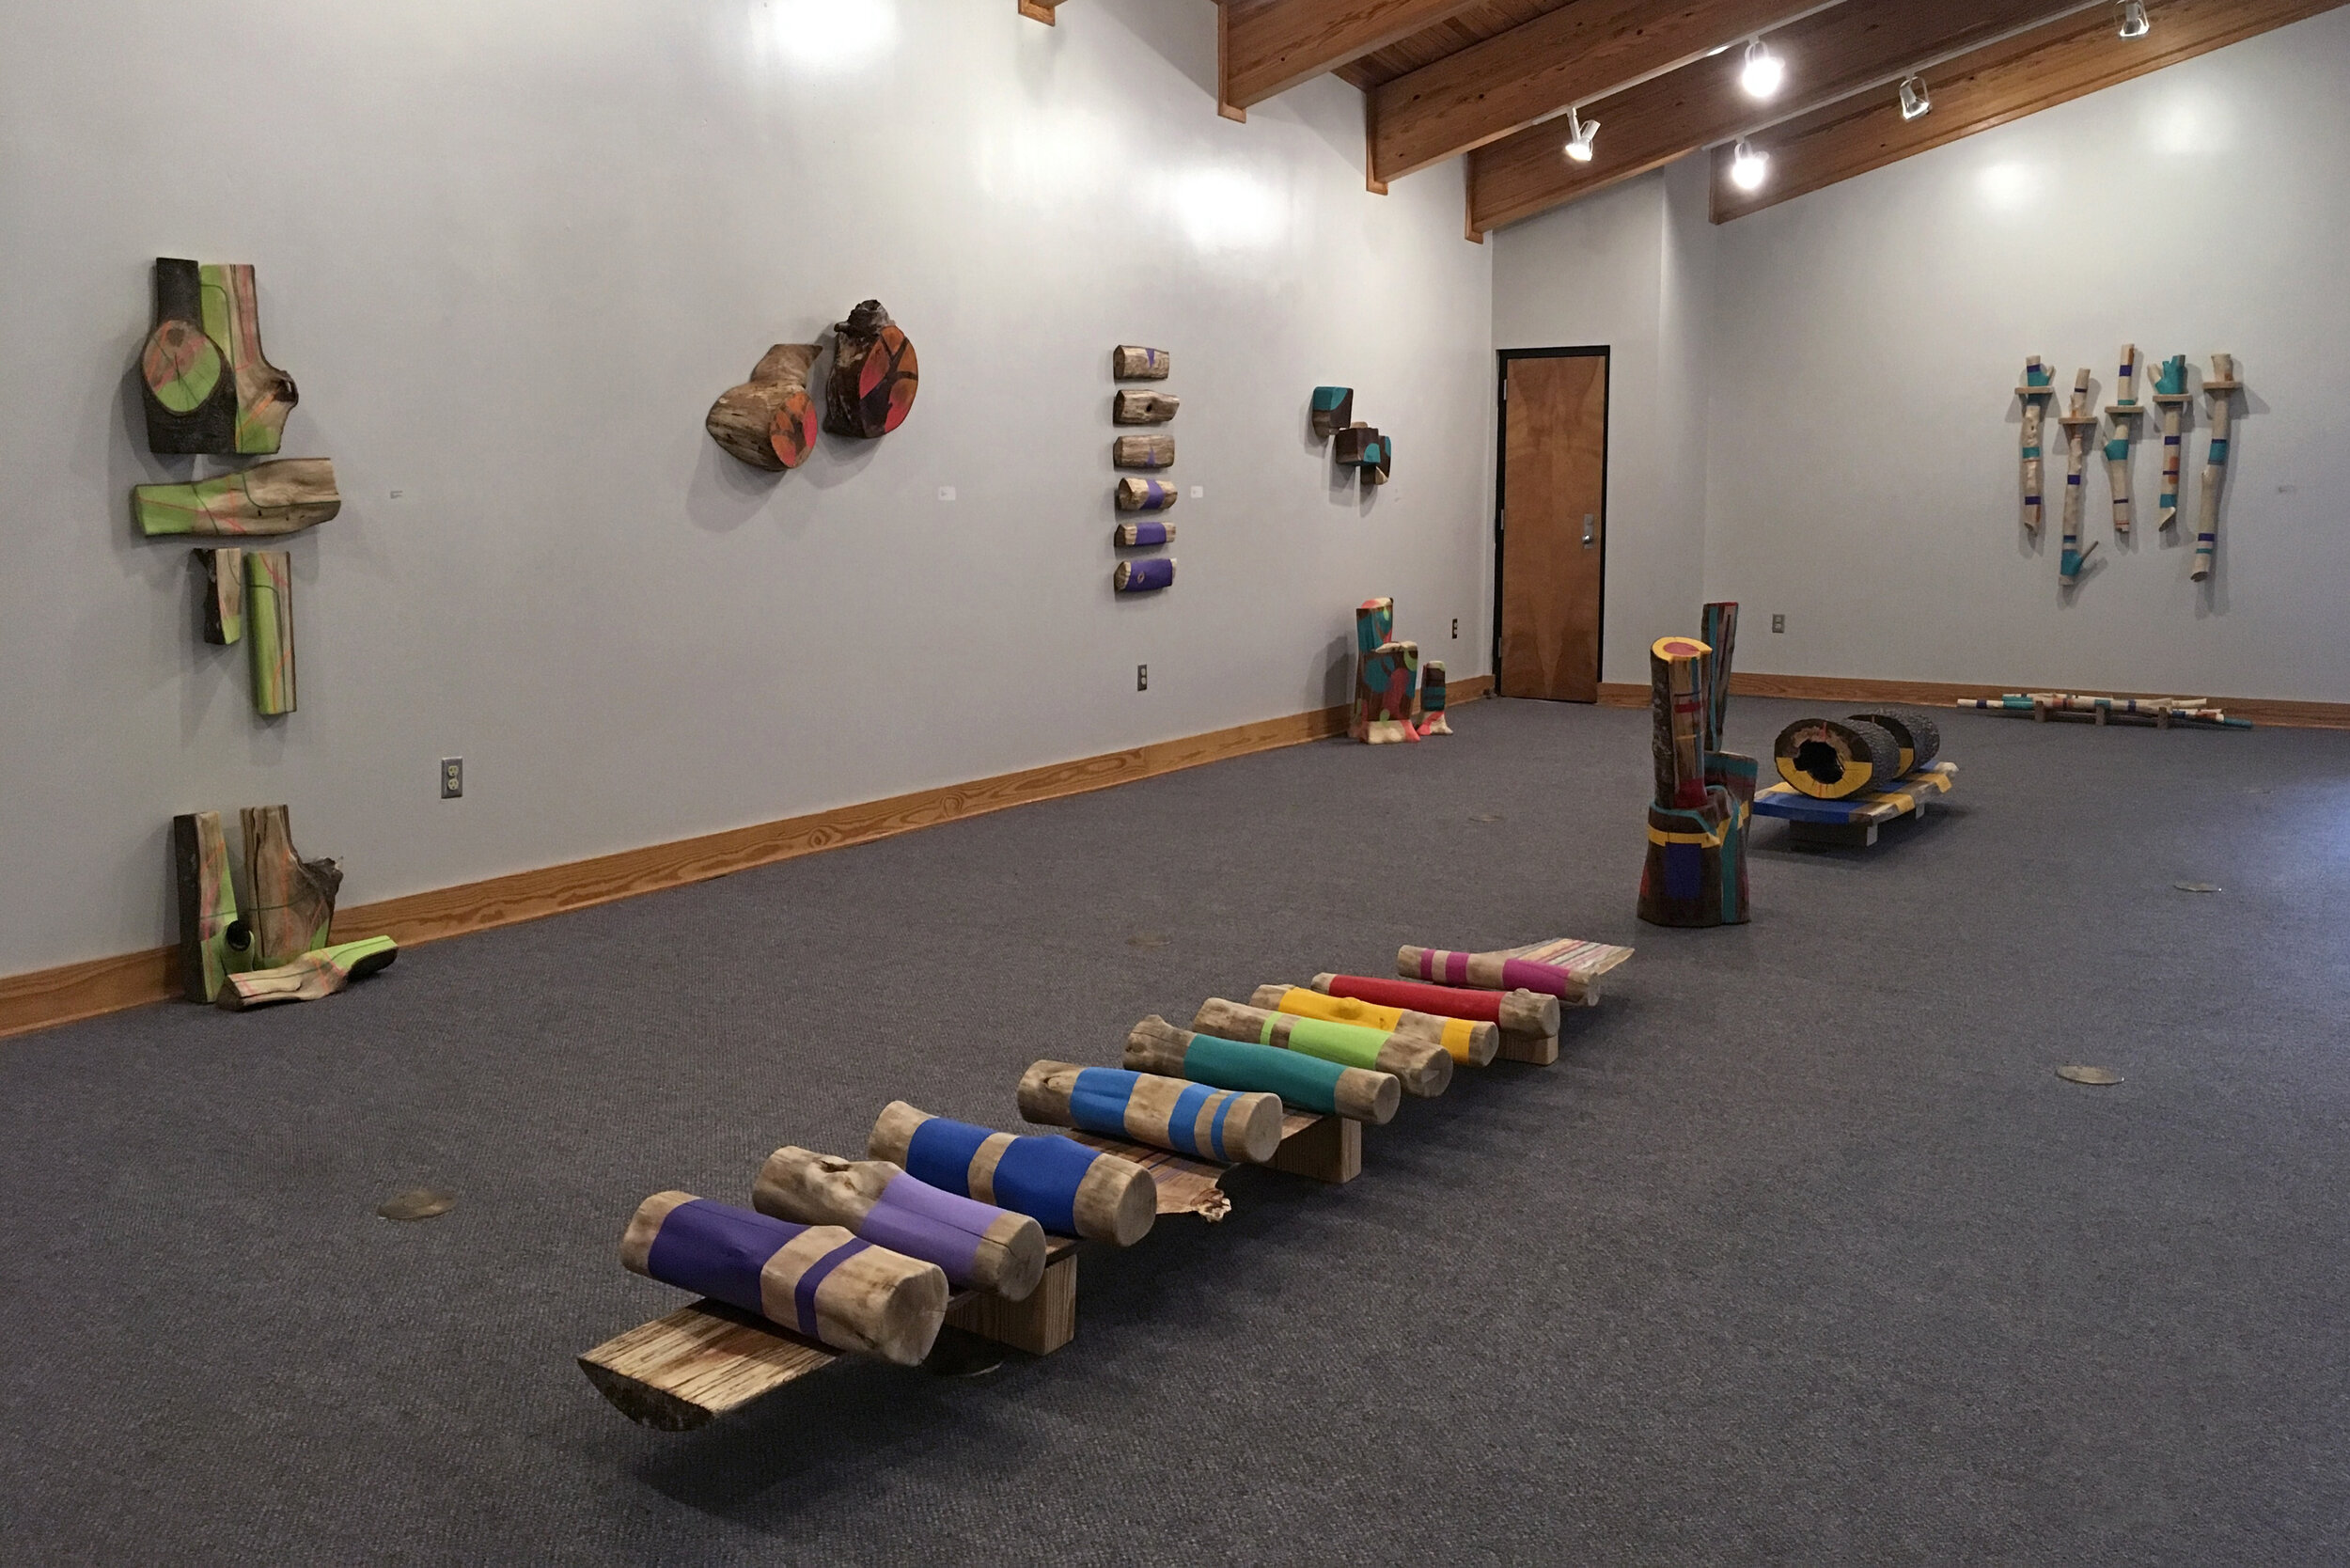 View 4 of Eula Bass Lewis Gallery space